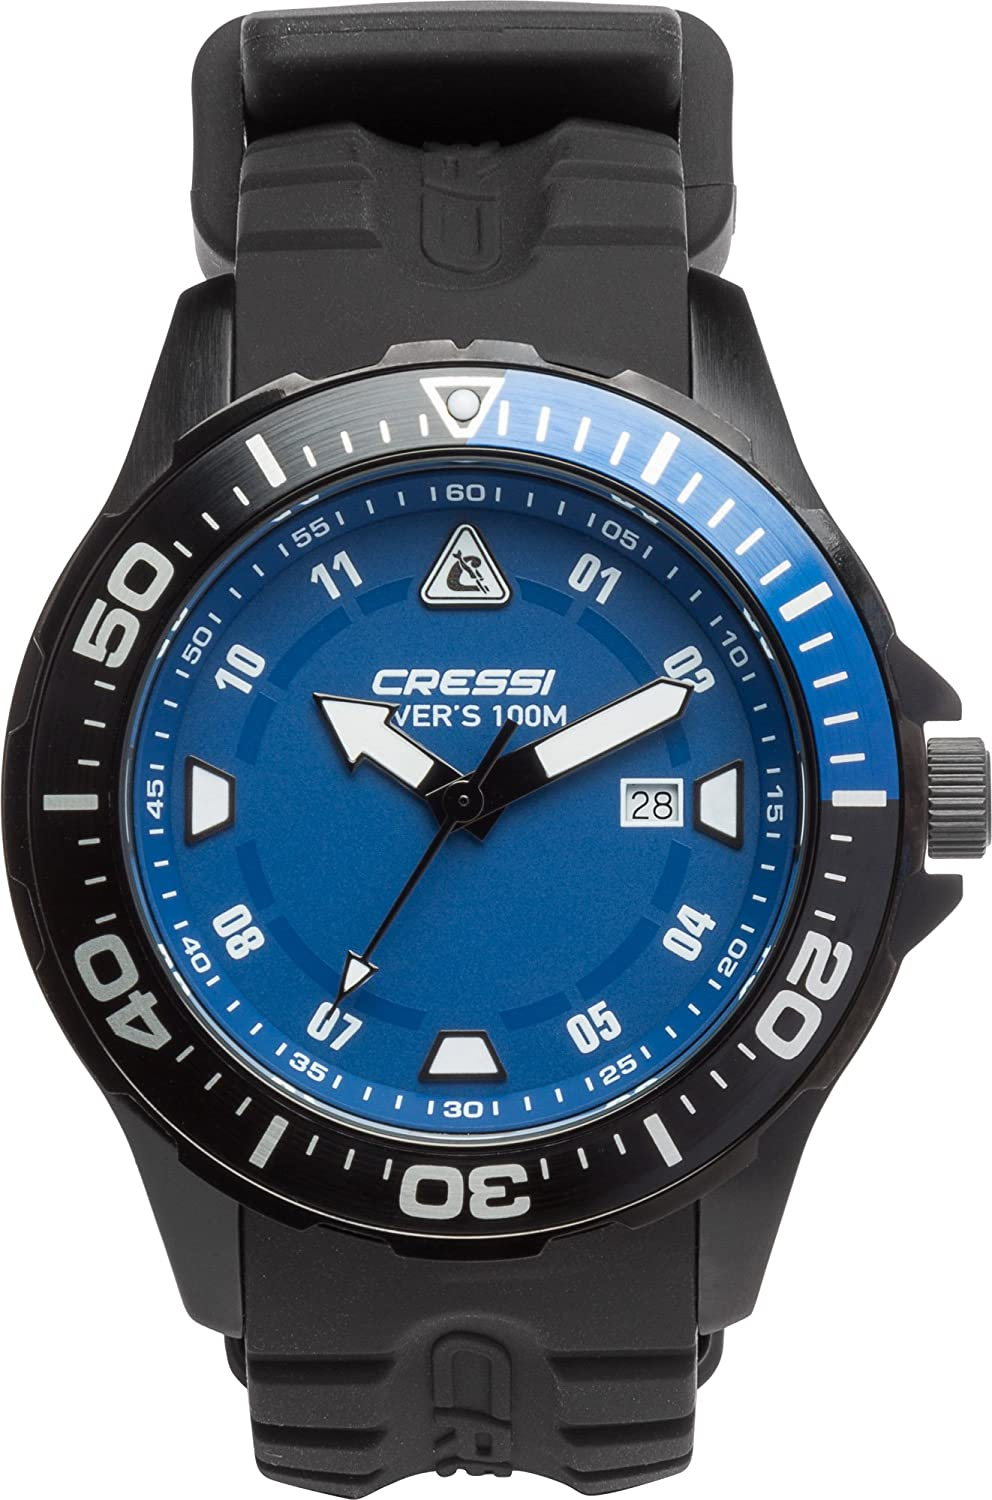 (One Size, Black Black blueee)  Cressi Manta colgoldma Professional Dive Watch with Mineral Glass Waterproof 100 m 10 ATM